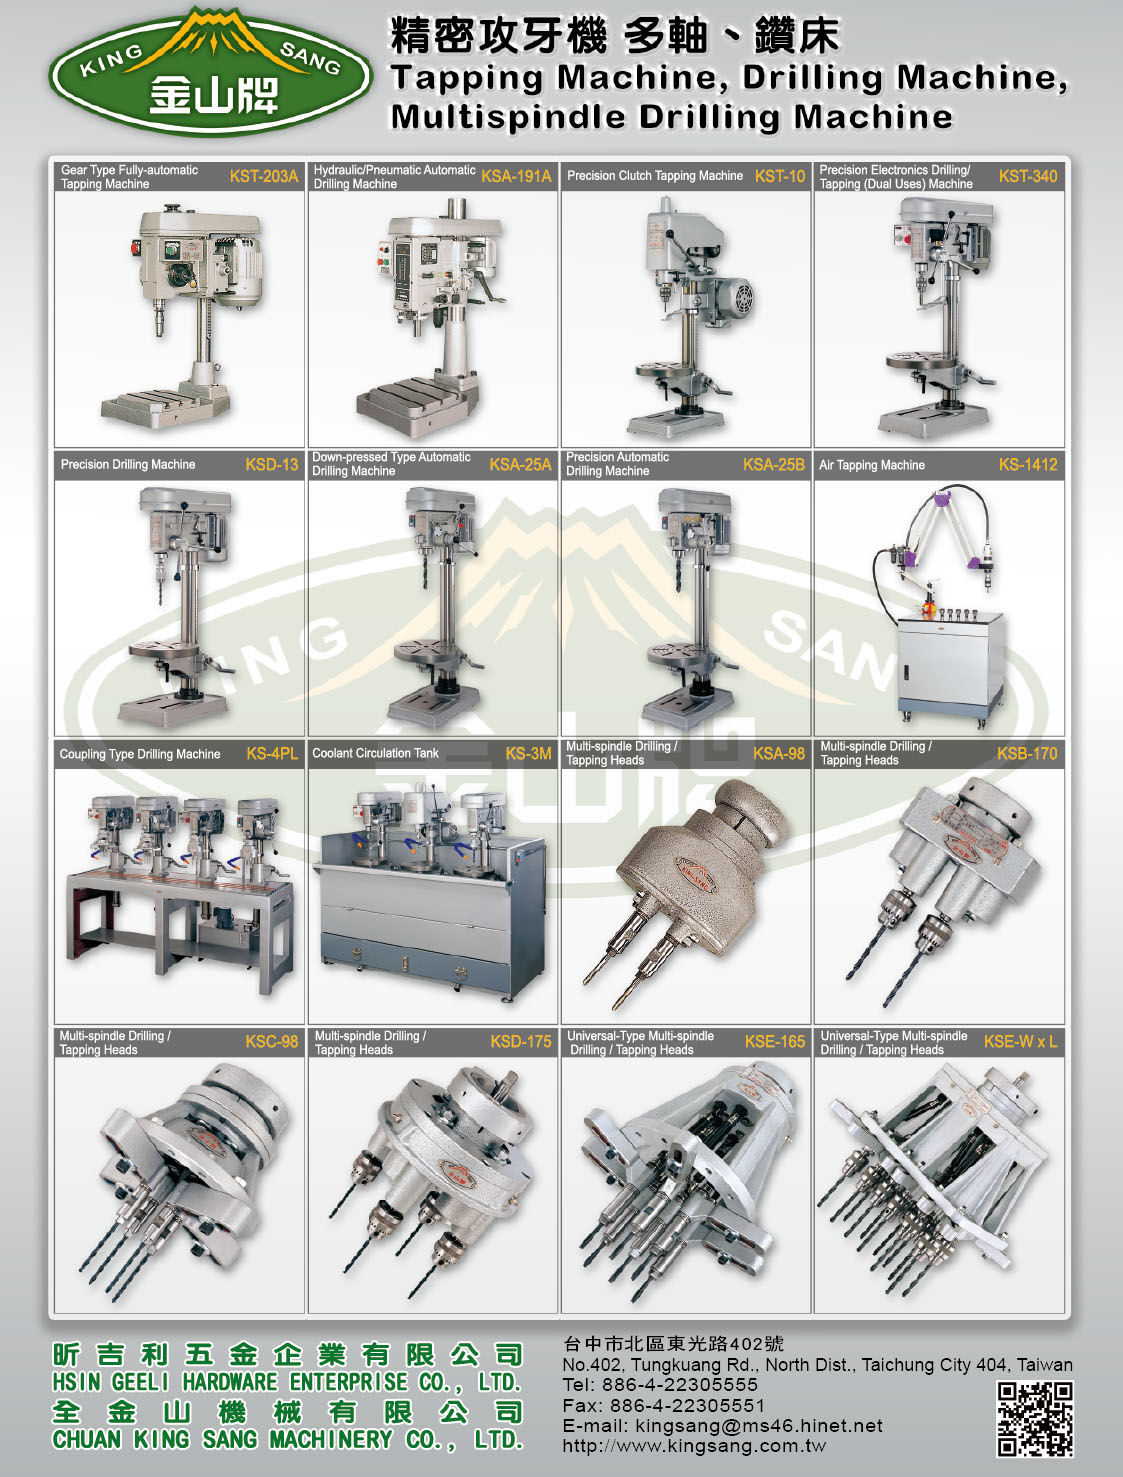 CHUAN KING SANG MACHINERY CO., LTD.